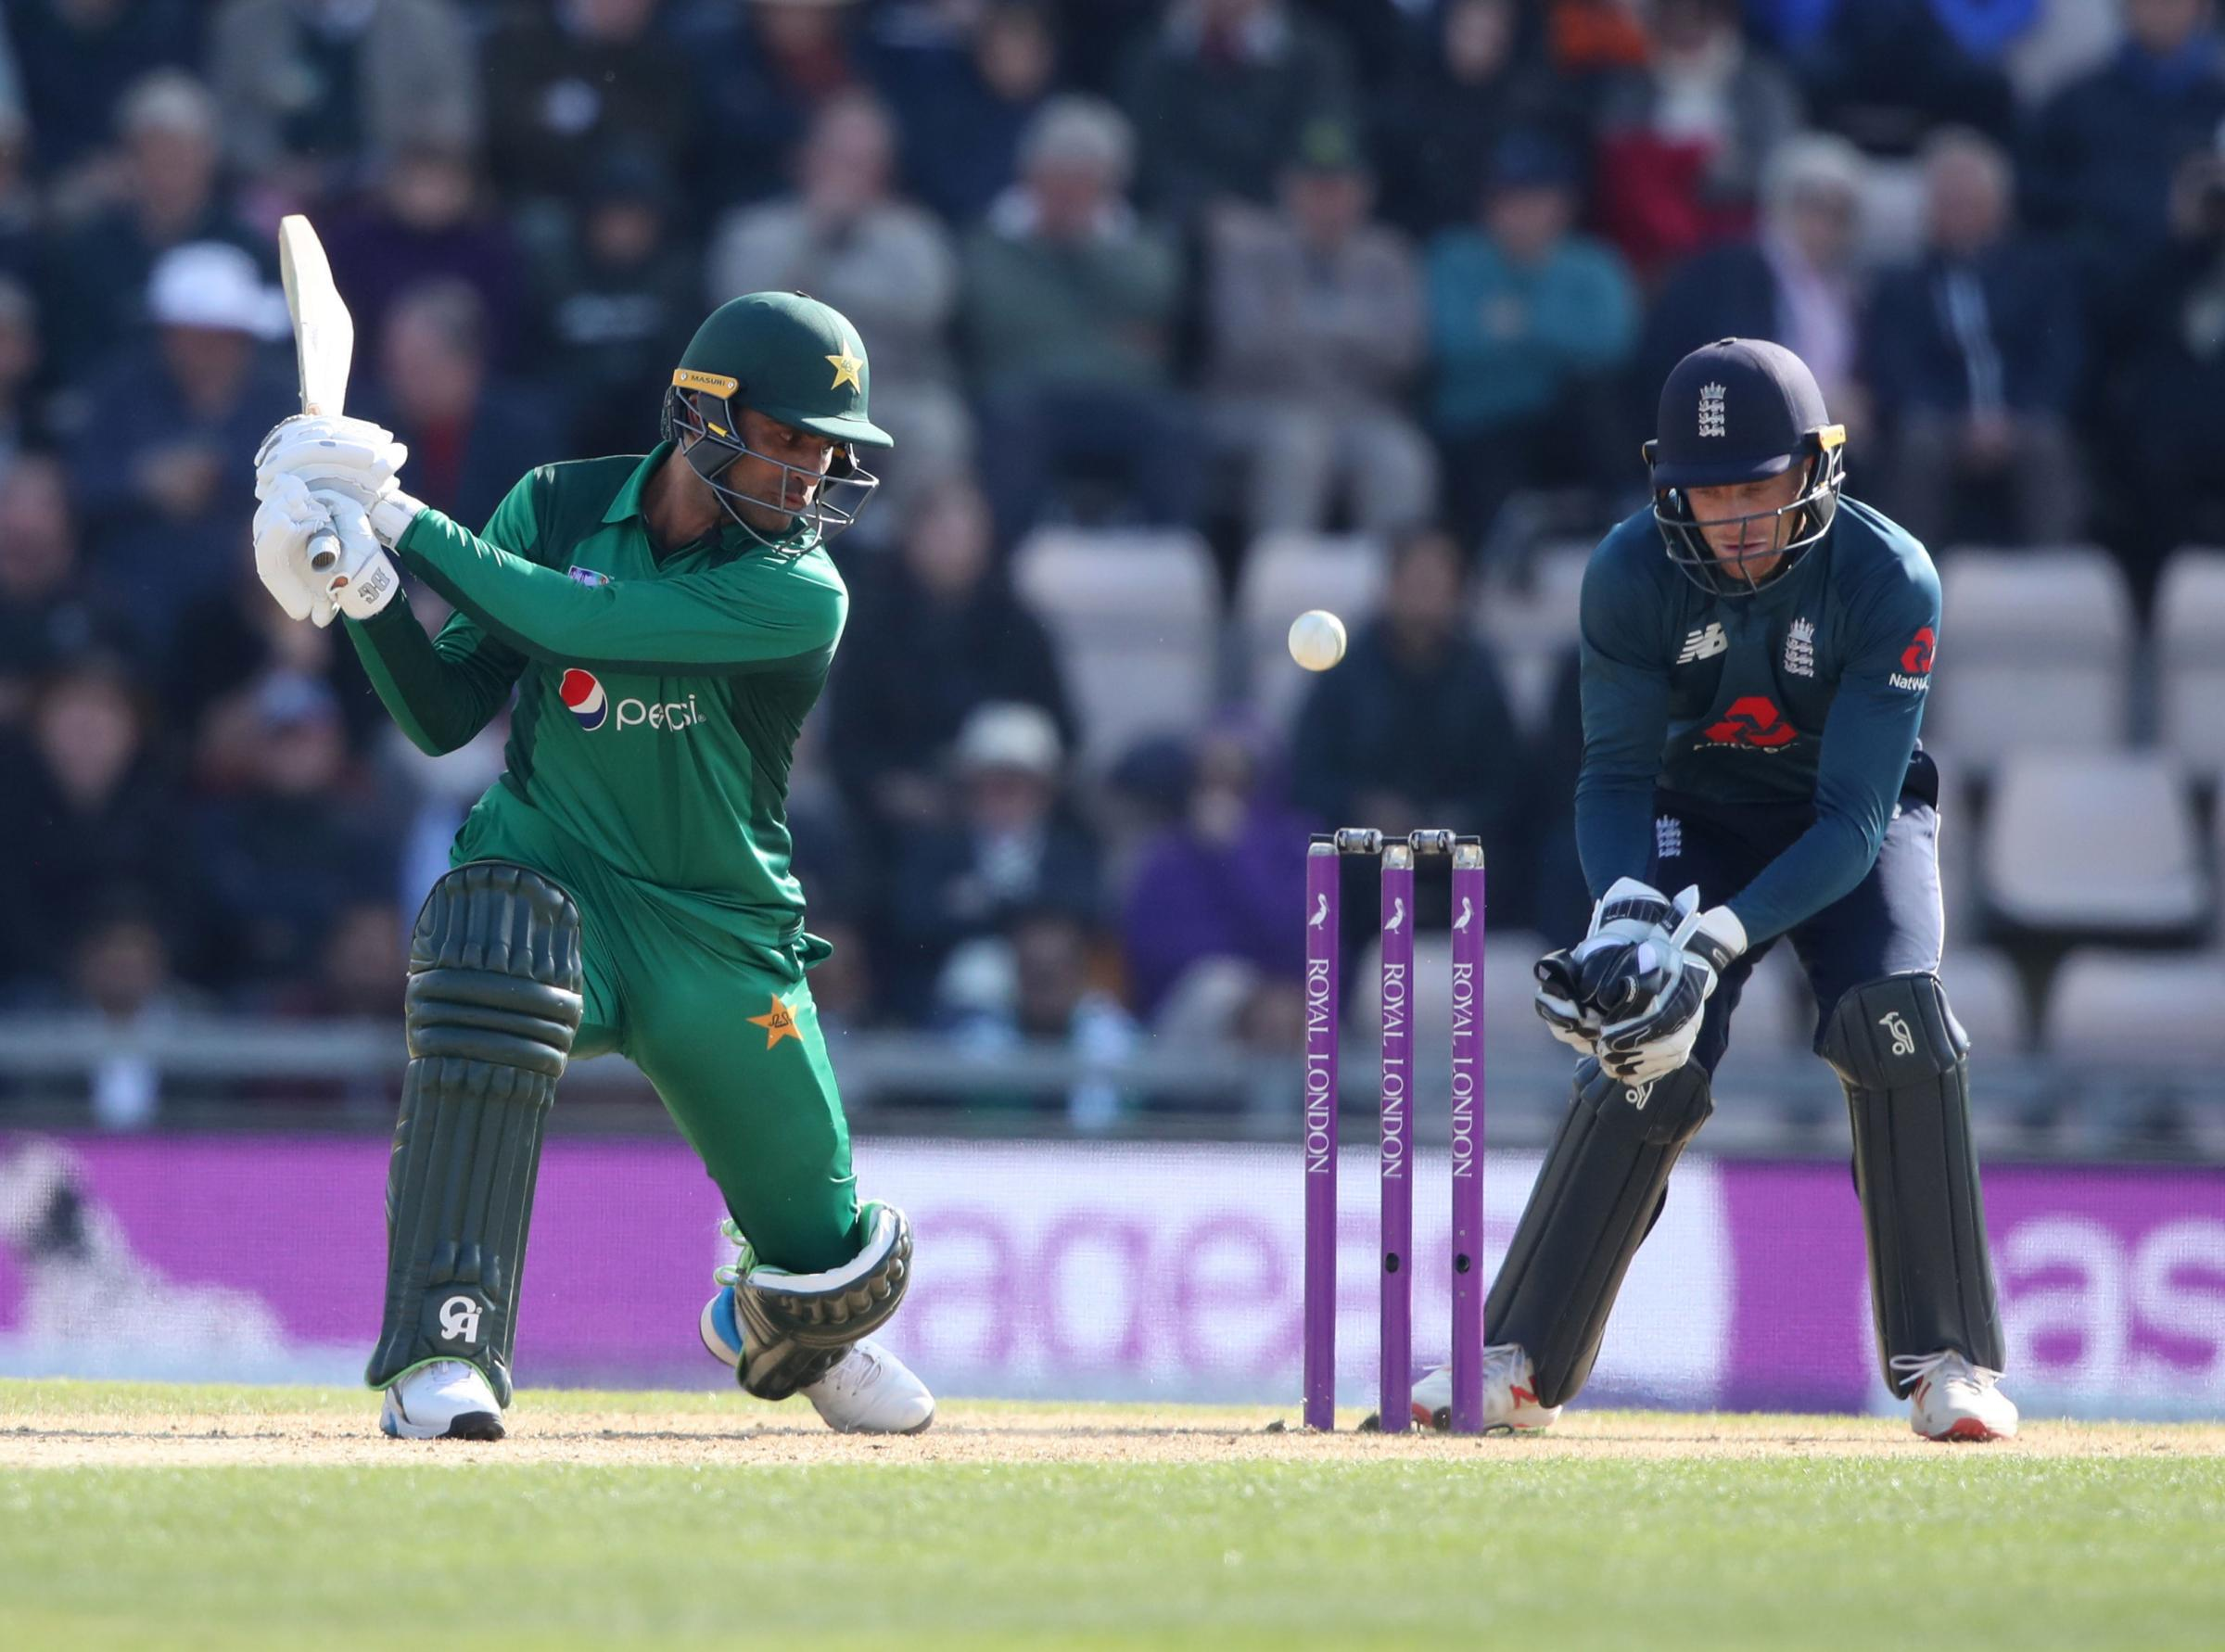 Somerset CCC junior members to train with Pakistan Cricket World Cup squad